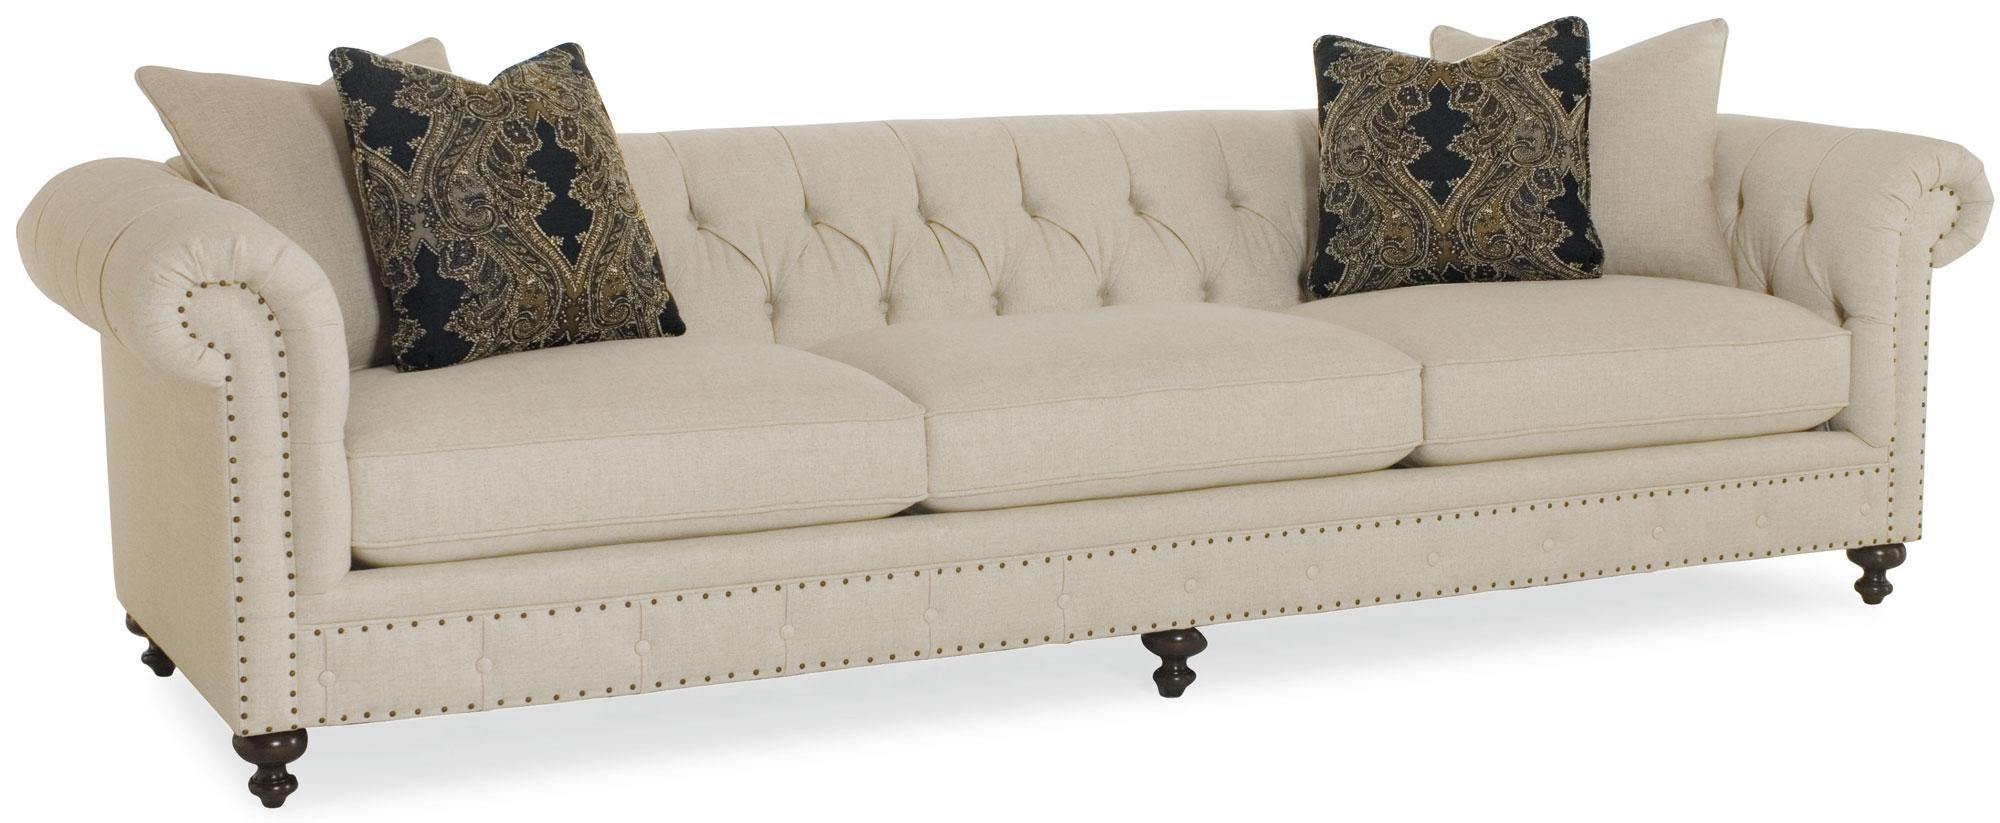 Bernhardt Upholstery | Bernhardt Within Bernhardt Sofas (View 7 of 20)